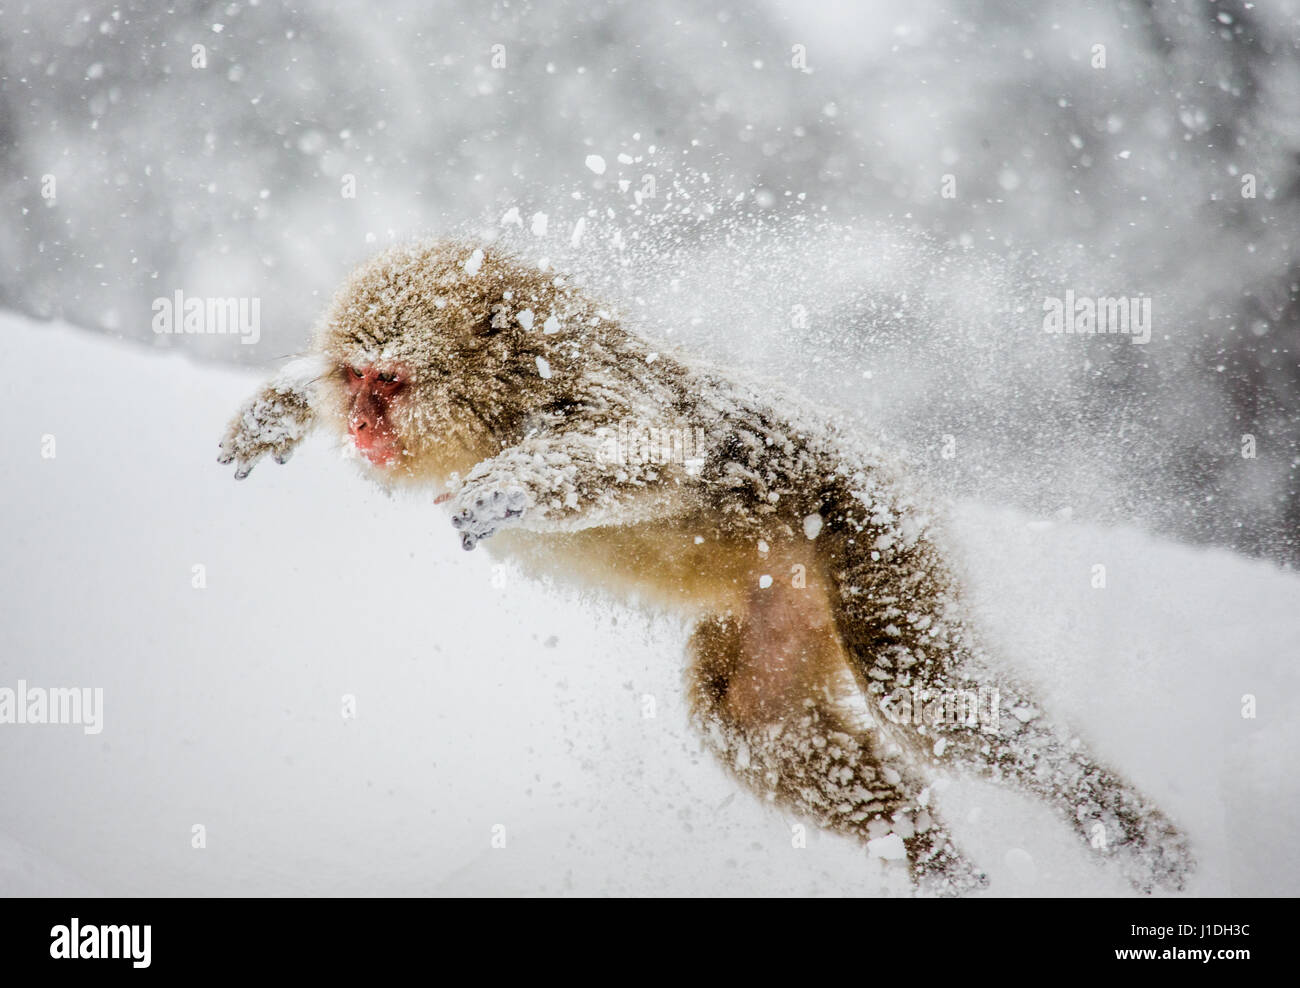 Japanese macaques jumping in the snow. Japan. Nagano. Jigokudani Monkey Park. An excellent illustration. - Stock Image